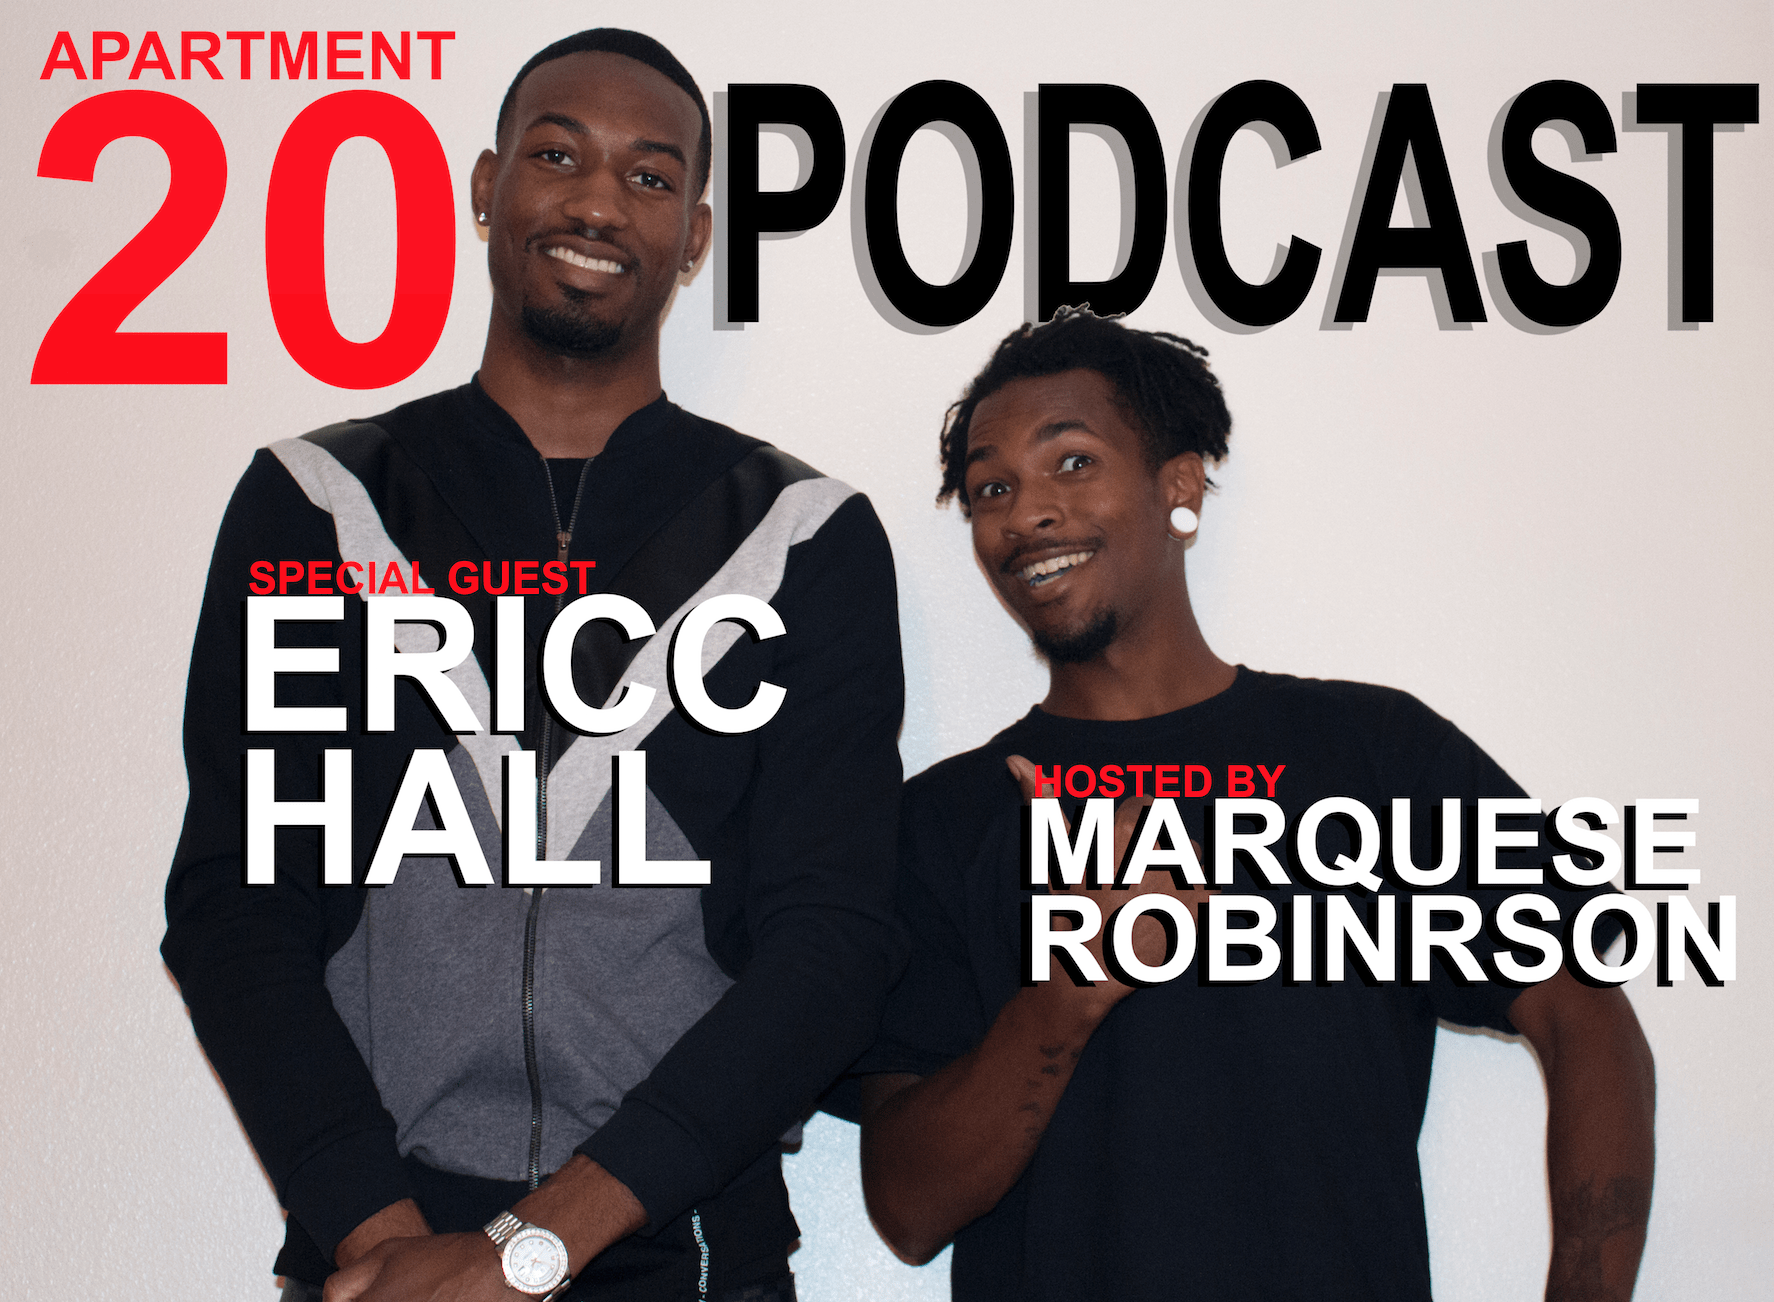 Apartment 20 Podcast: Ericc Hall